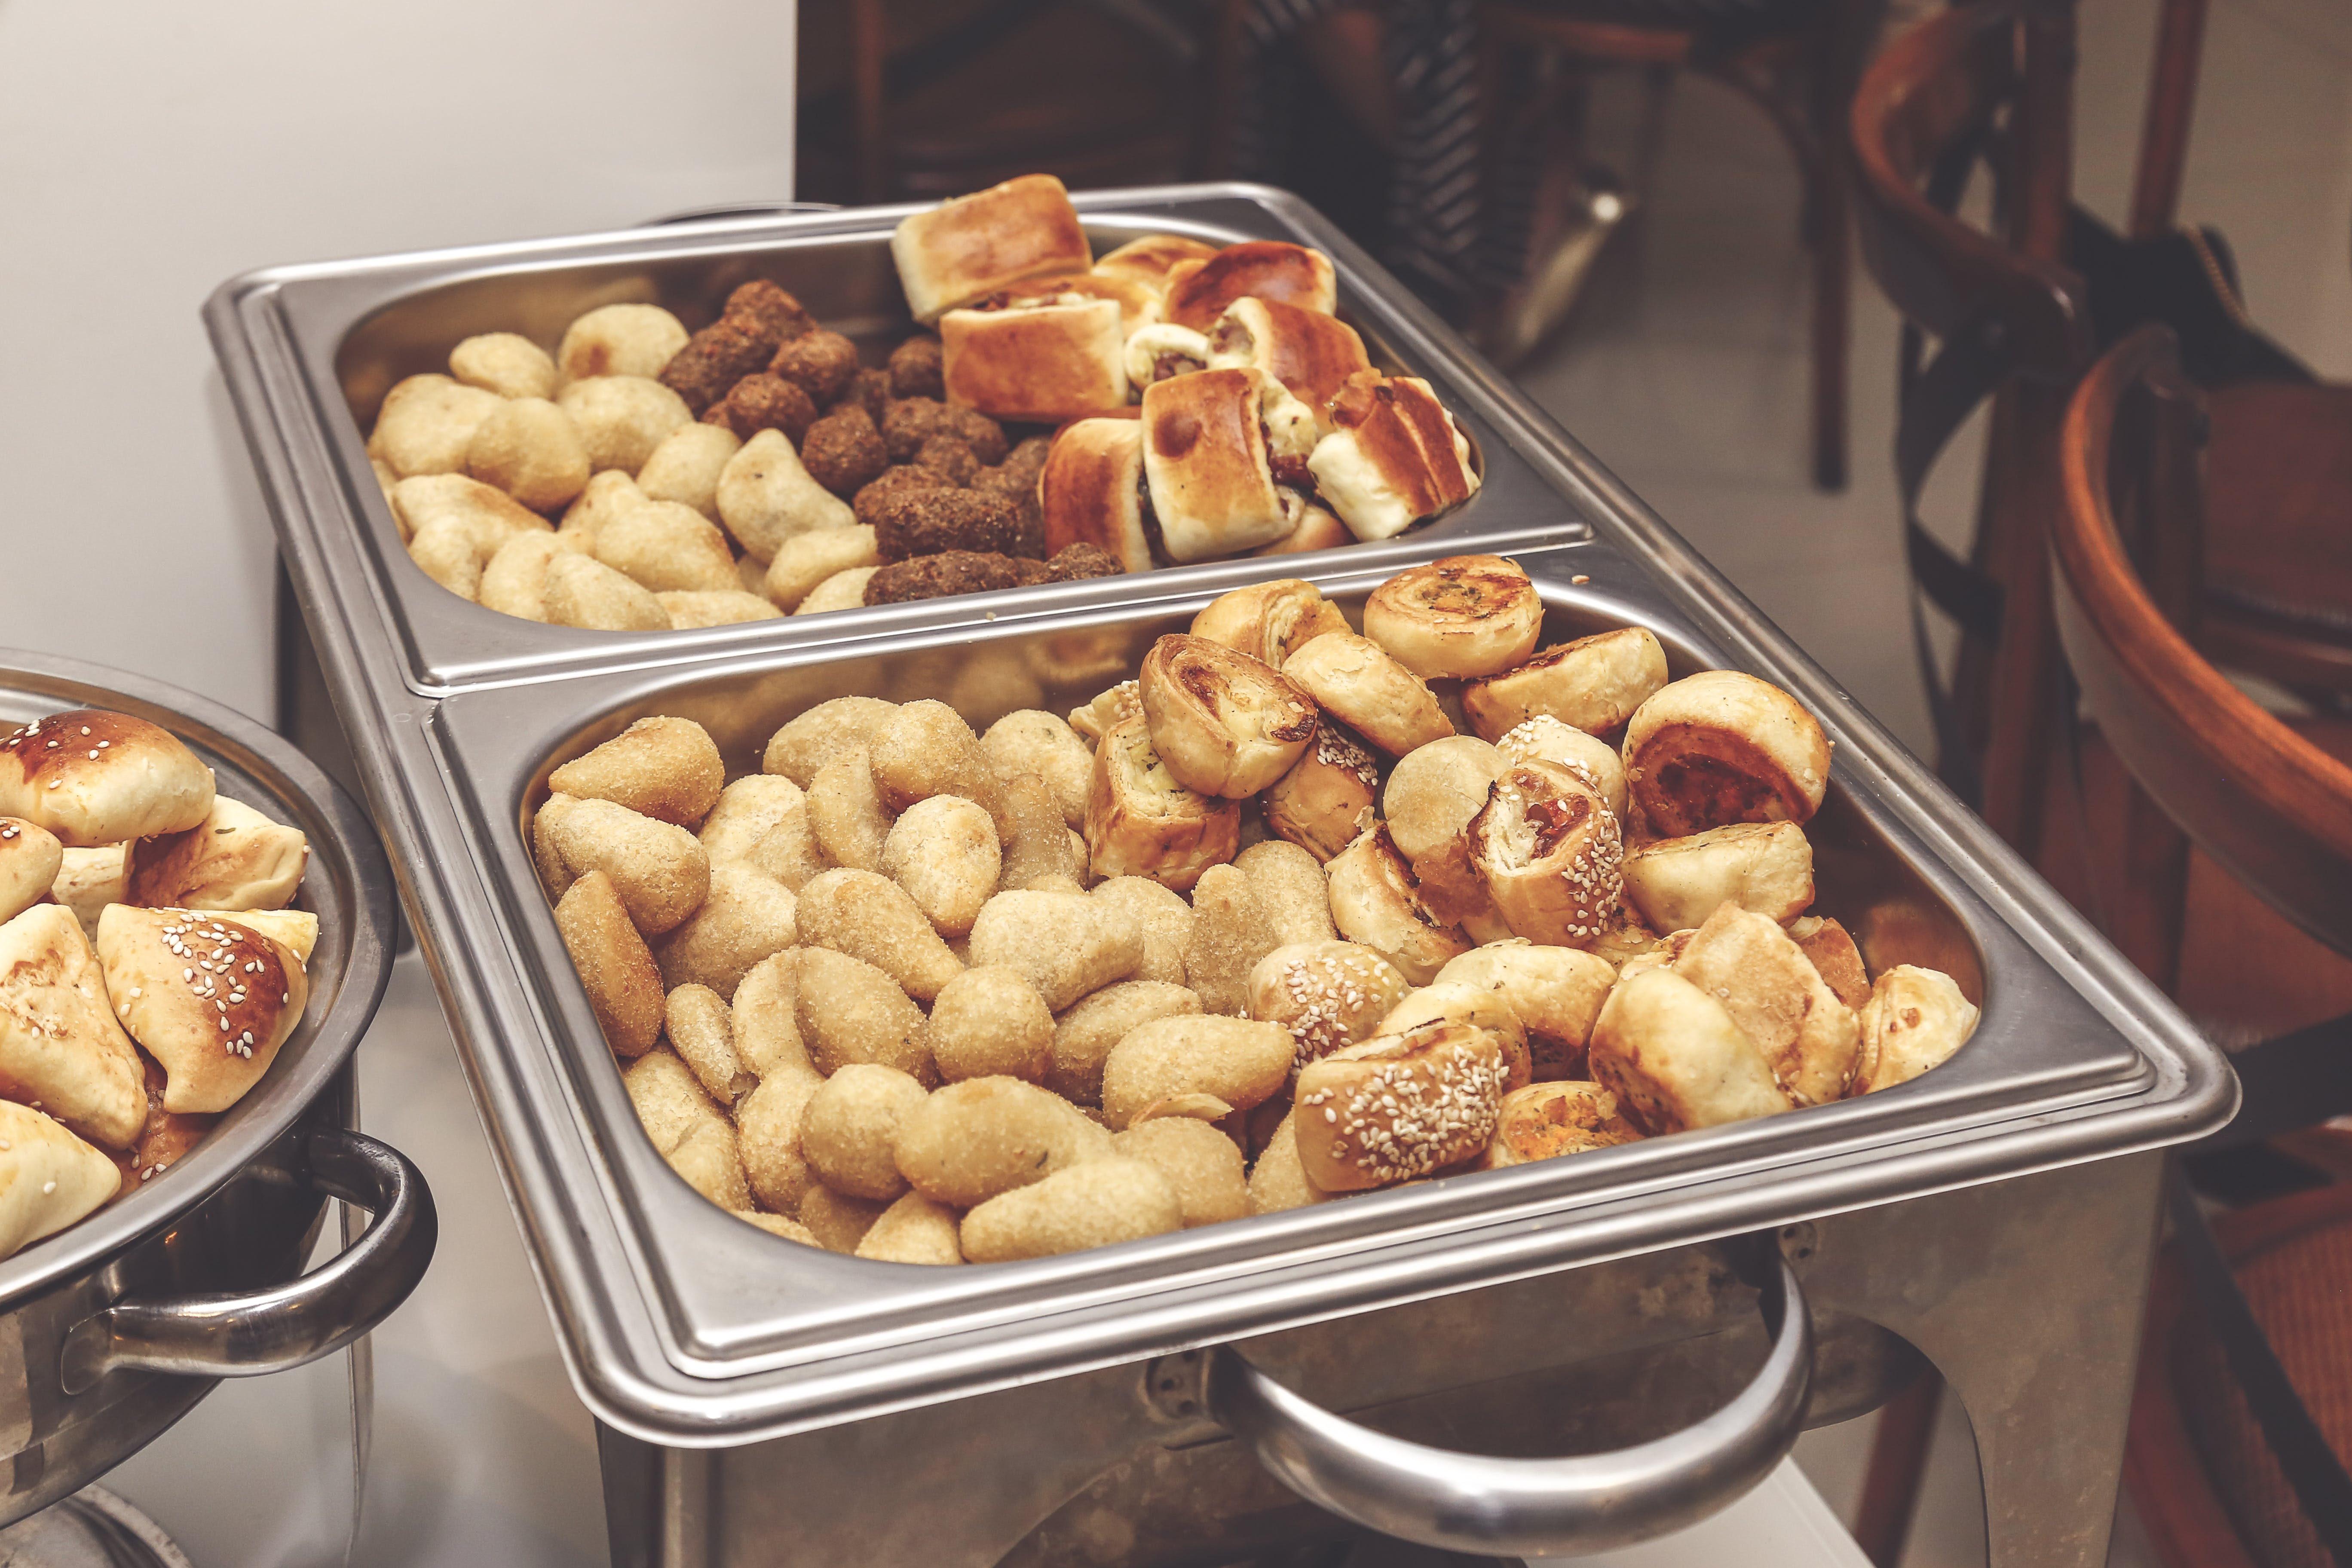 Assorted Pastries On Trays